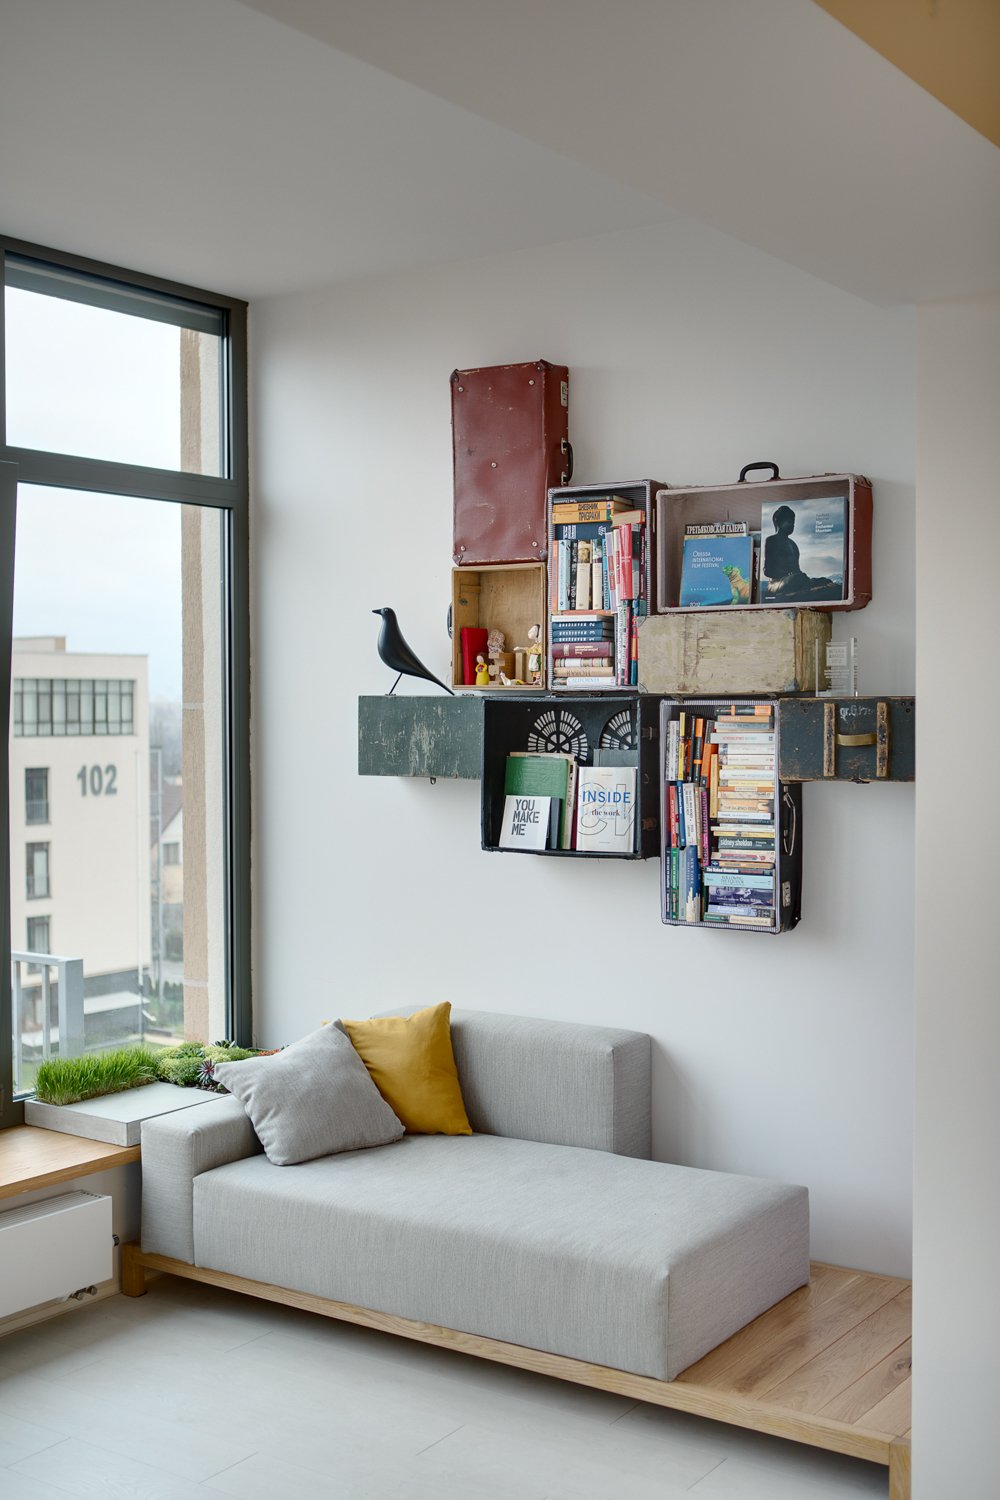 This is more of a project than anything, but if you don't want to be lazy all weekend, it might be something for you. The re-purposed crates and suitcases add a vintage feel to the modern set-up. It's clean and simple, yet the wall decor compliments the art of old-fashioned books and publications instead of swiping through e-book pages on a Kindle or iPad. All hail the feel of paper rustling between your fingers.